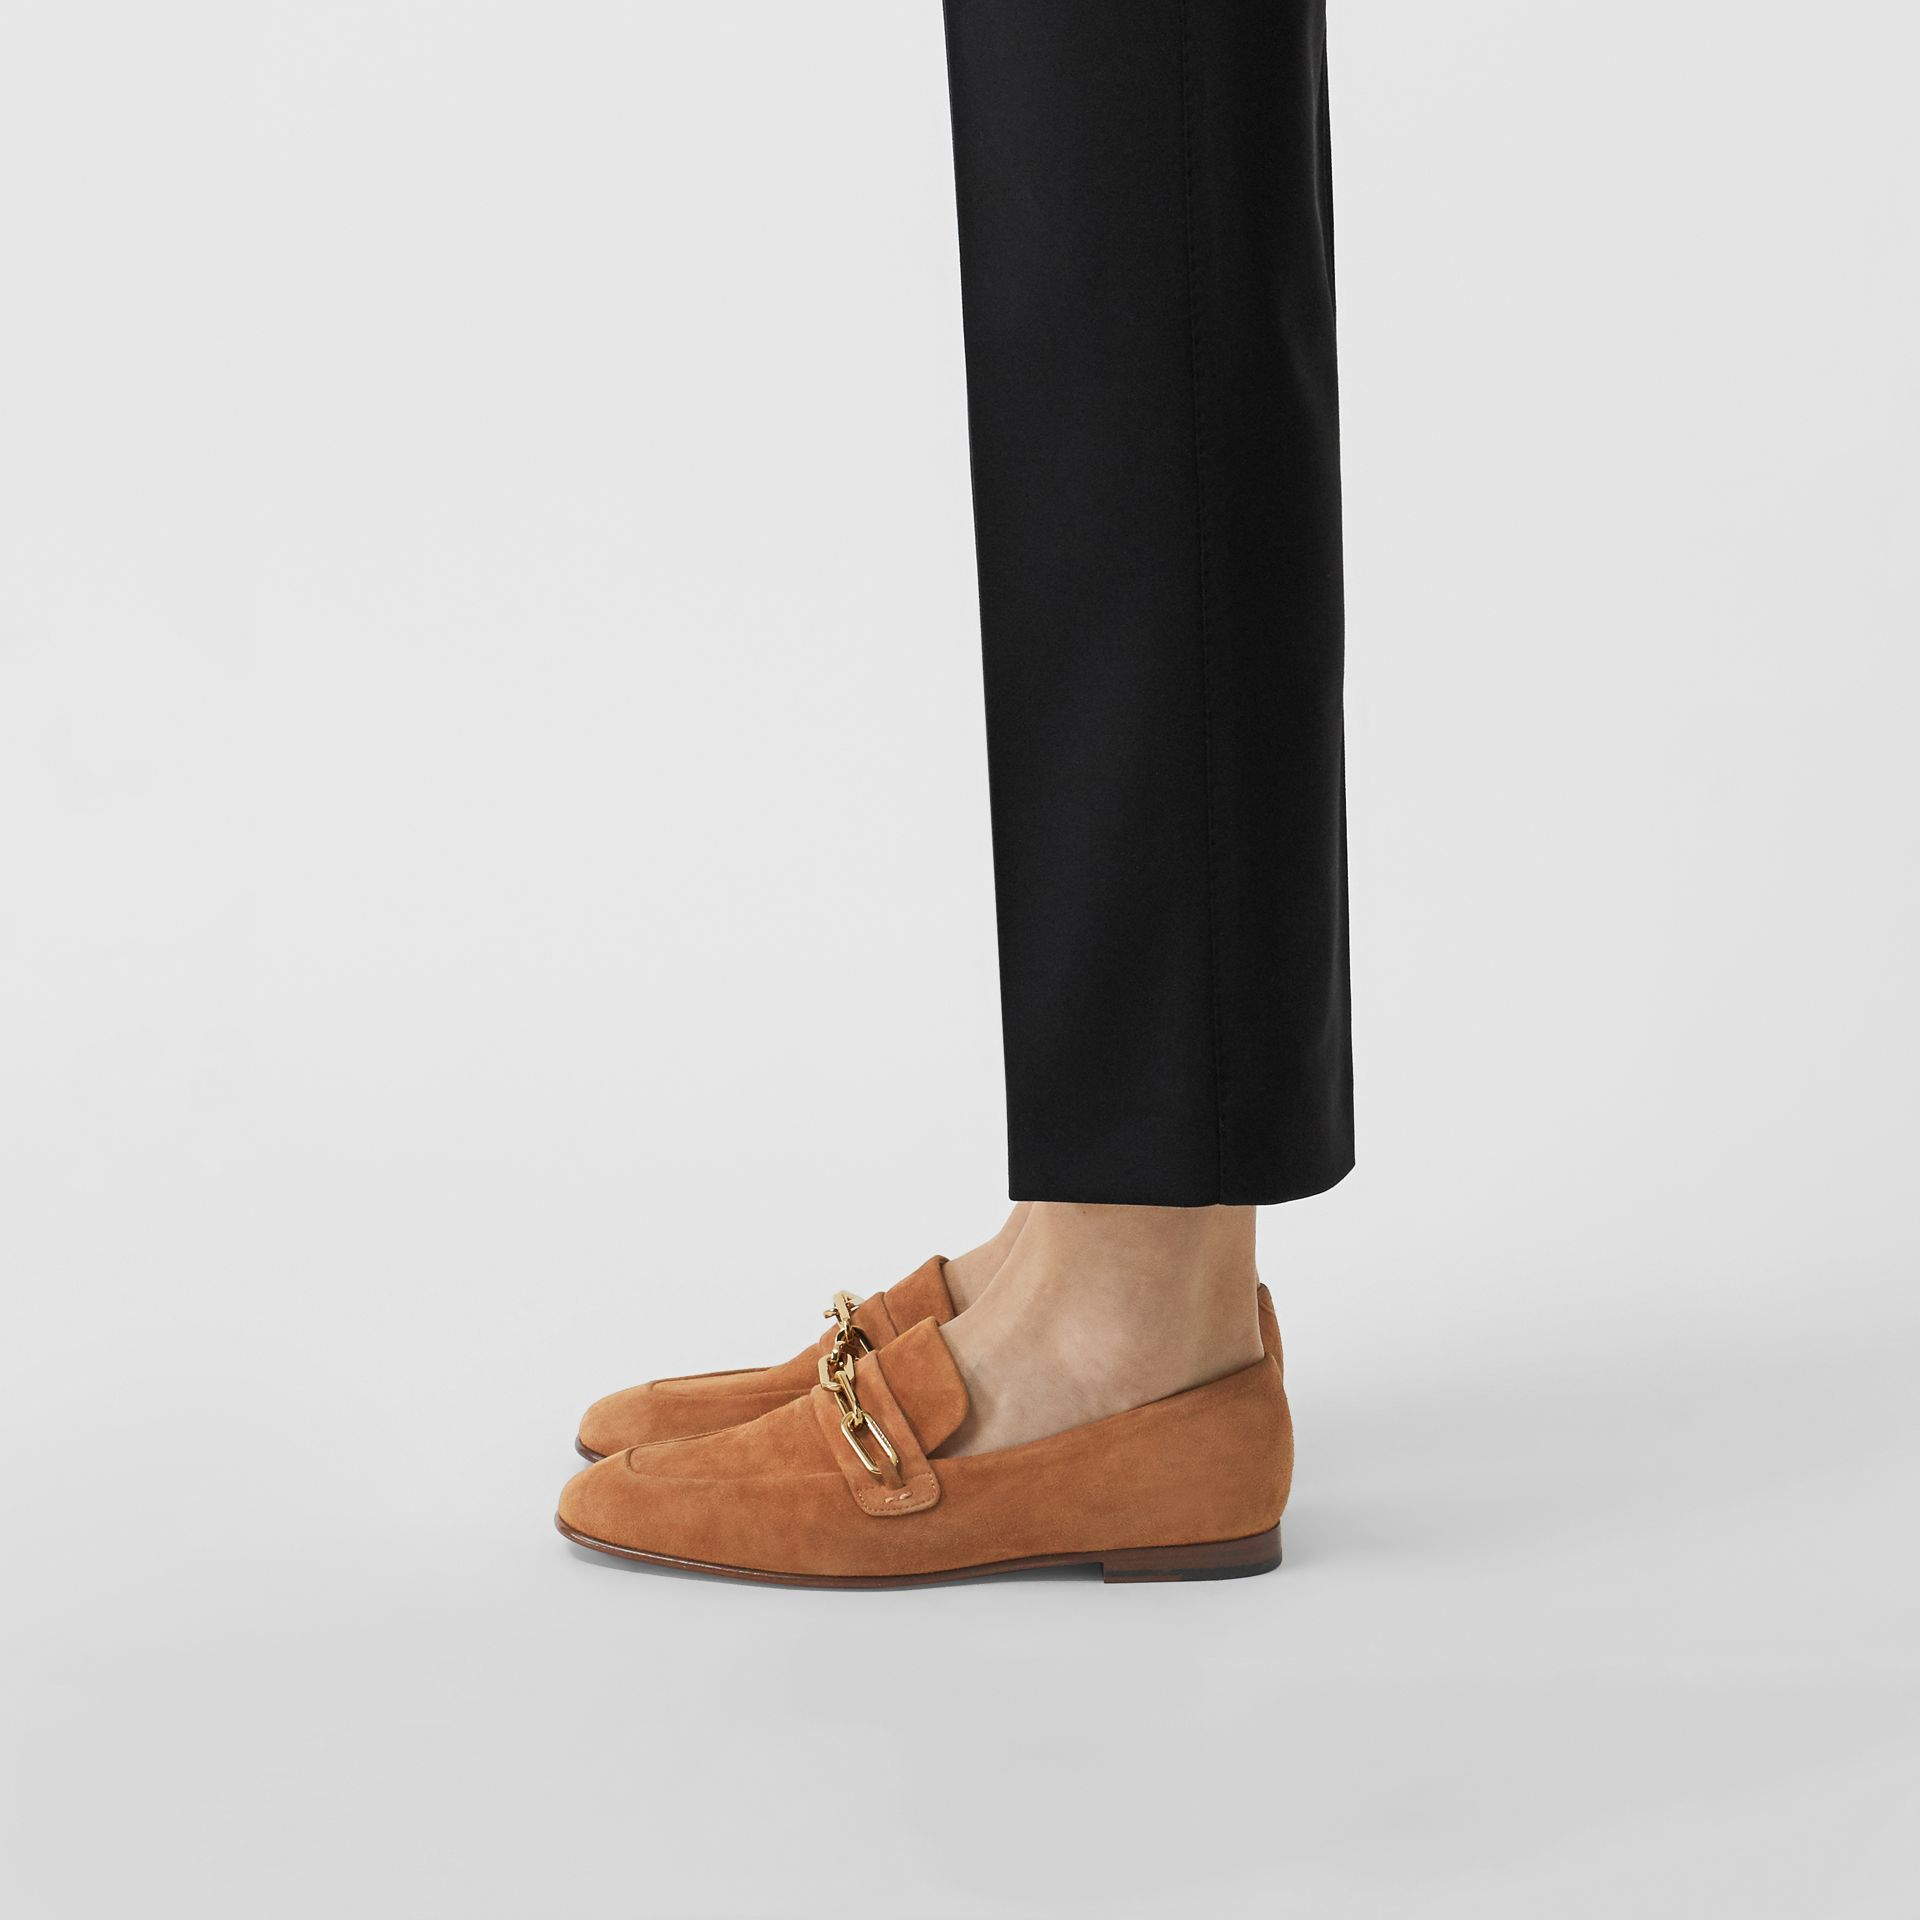 Link Detail Suede Loafers in Mid Camel - Women | Burberry - gallery image 2